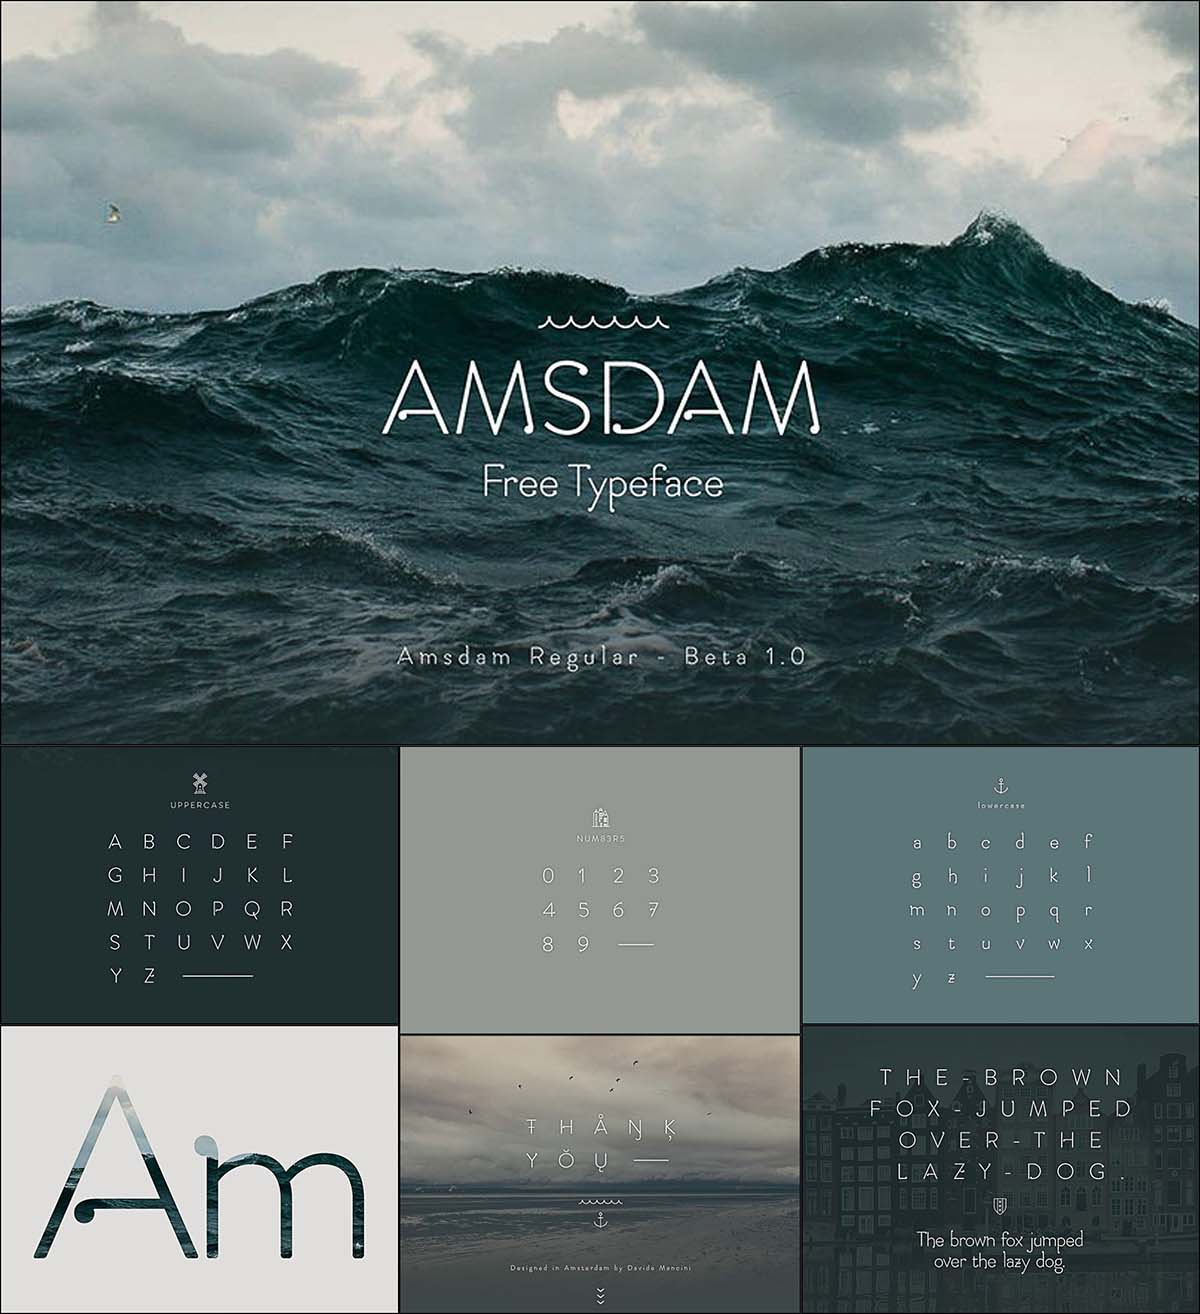 Amsdam free typeface | Free download